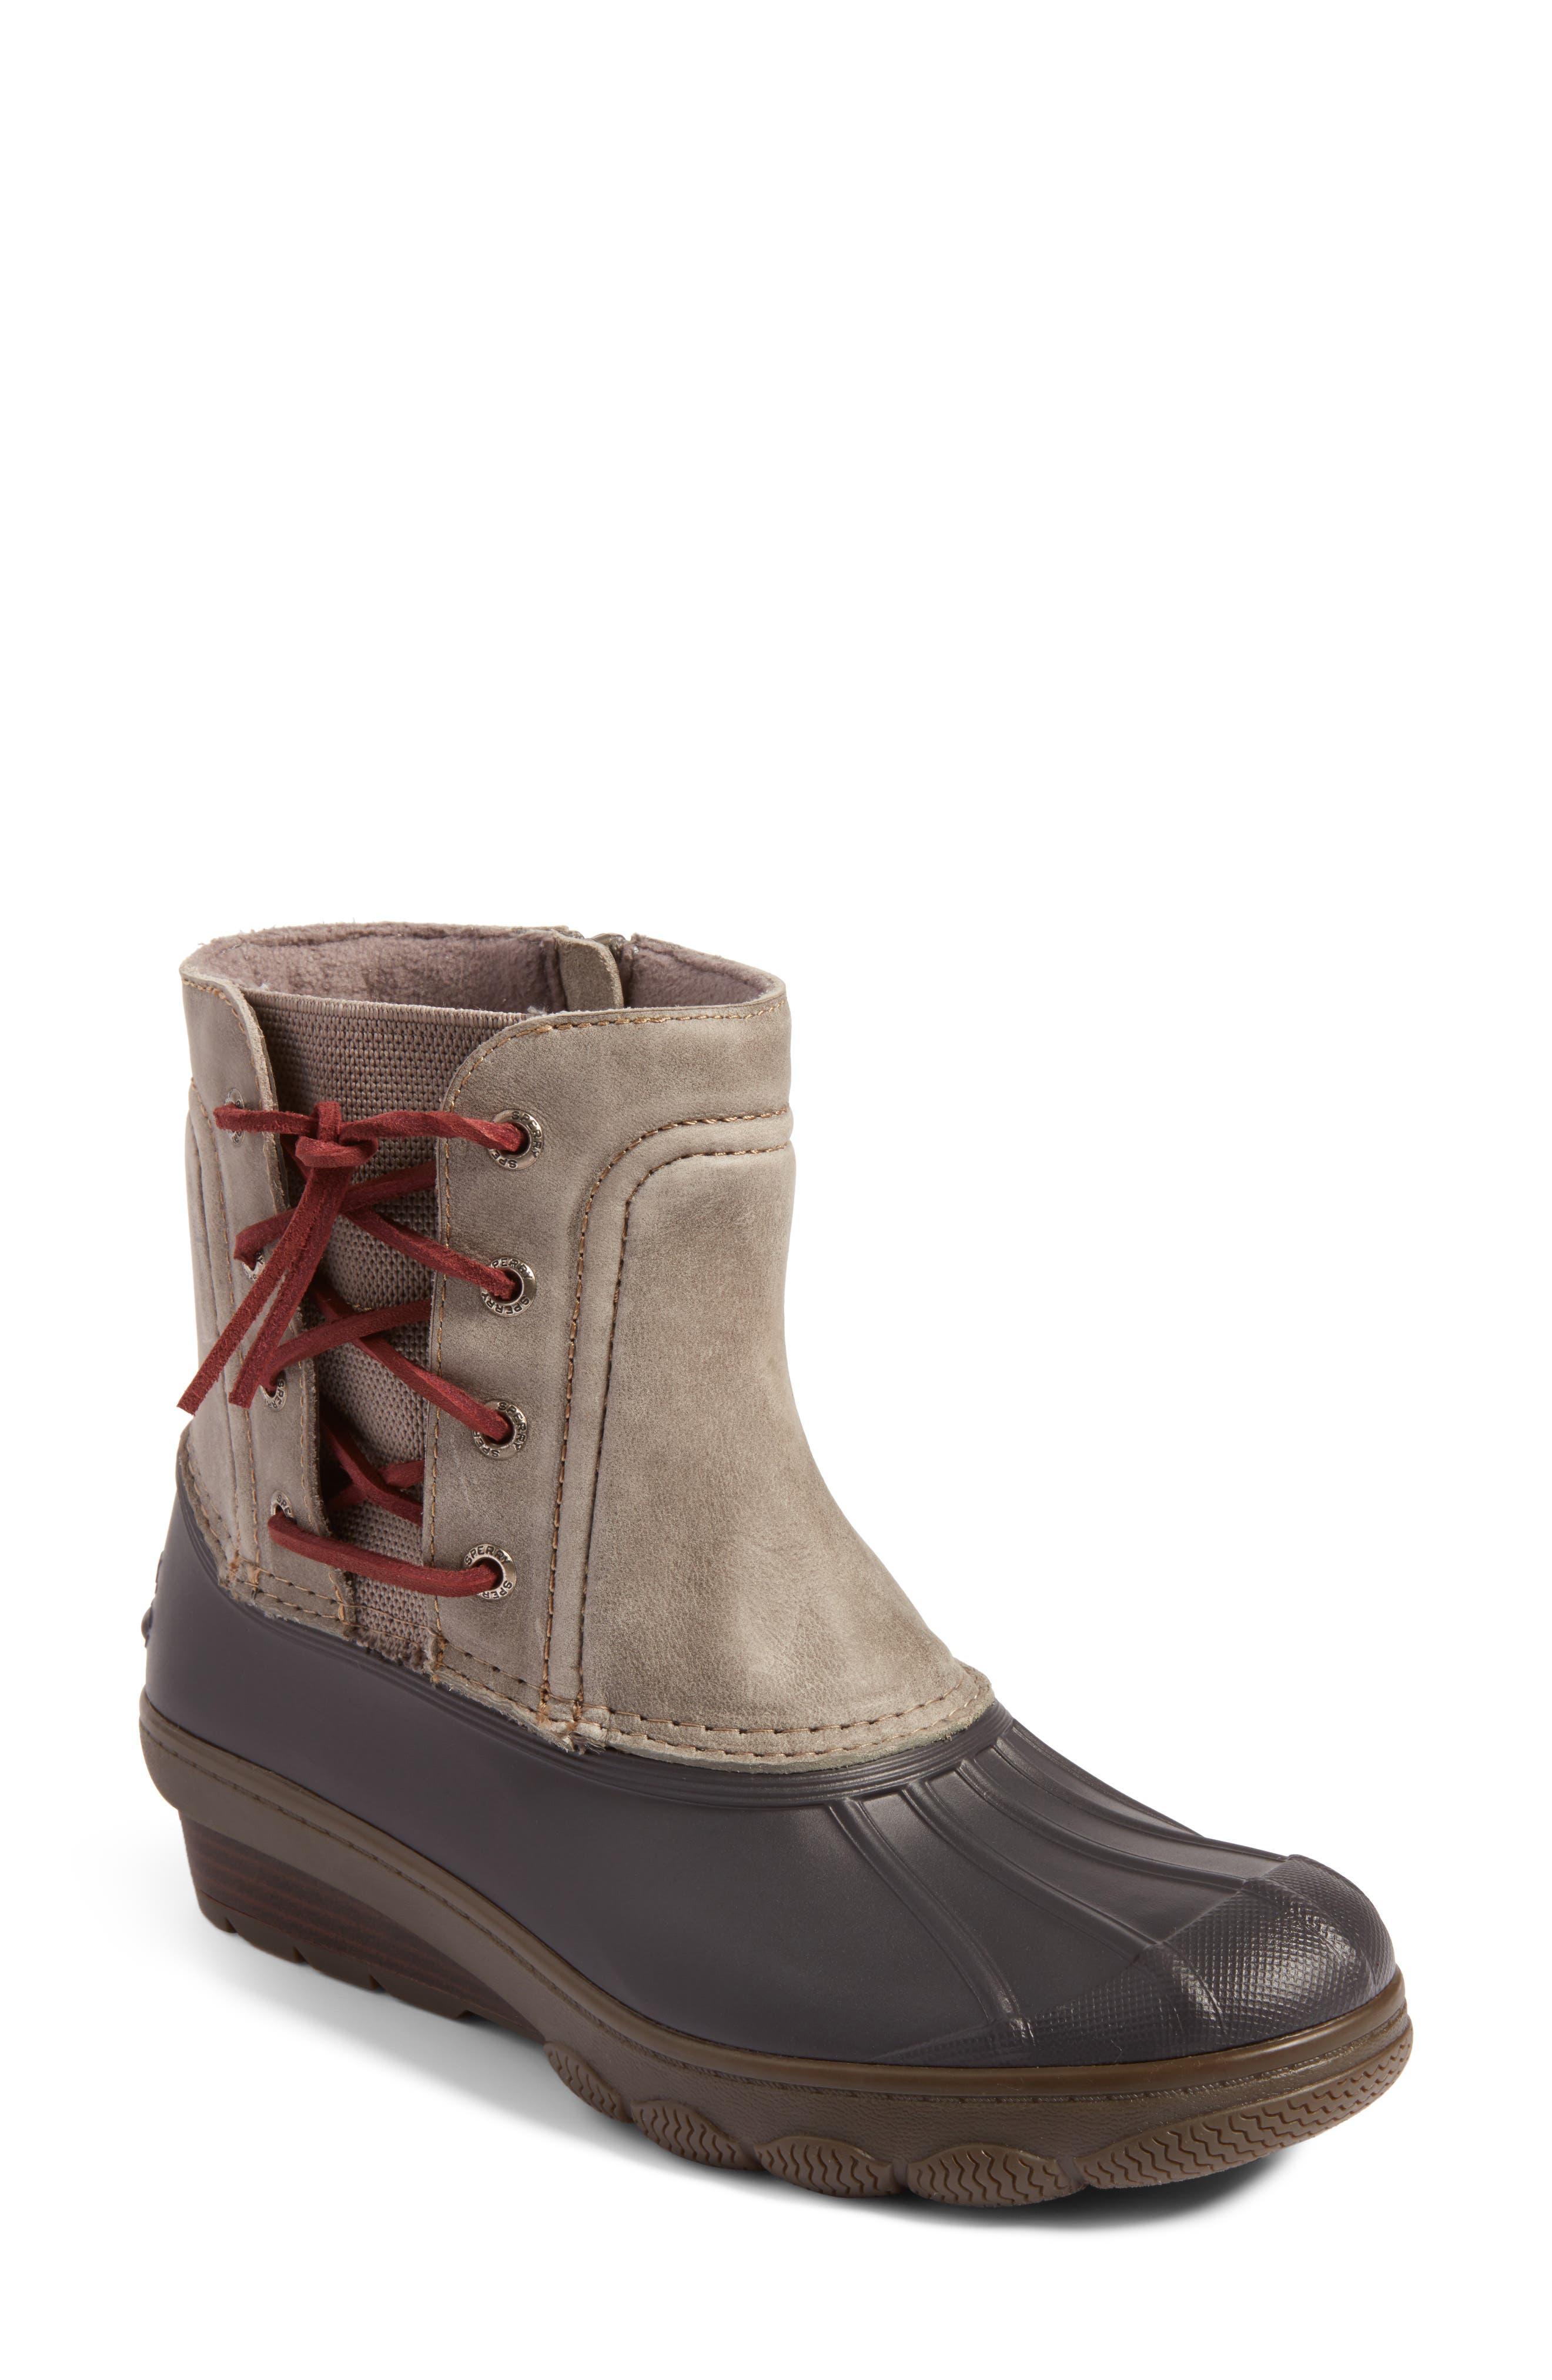 Sperry Saltwater Spray Wedge Waterproof Rain Boot (Women)